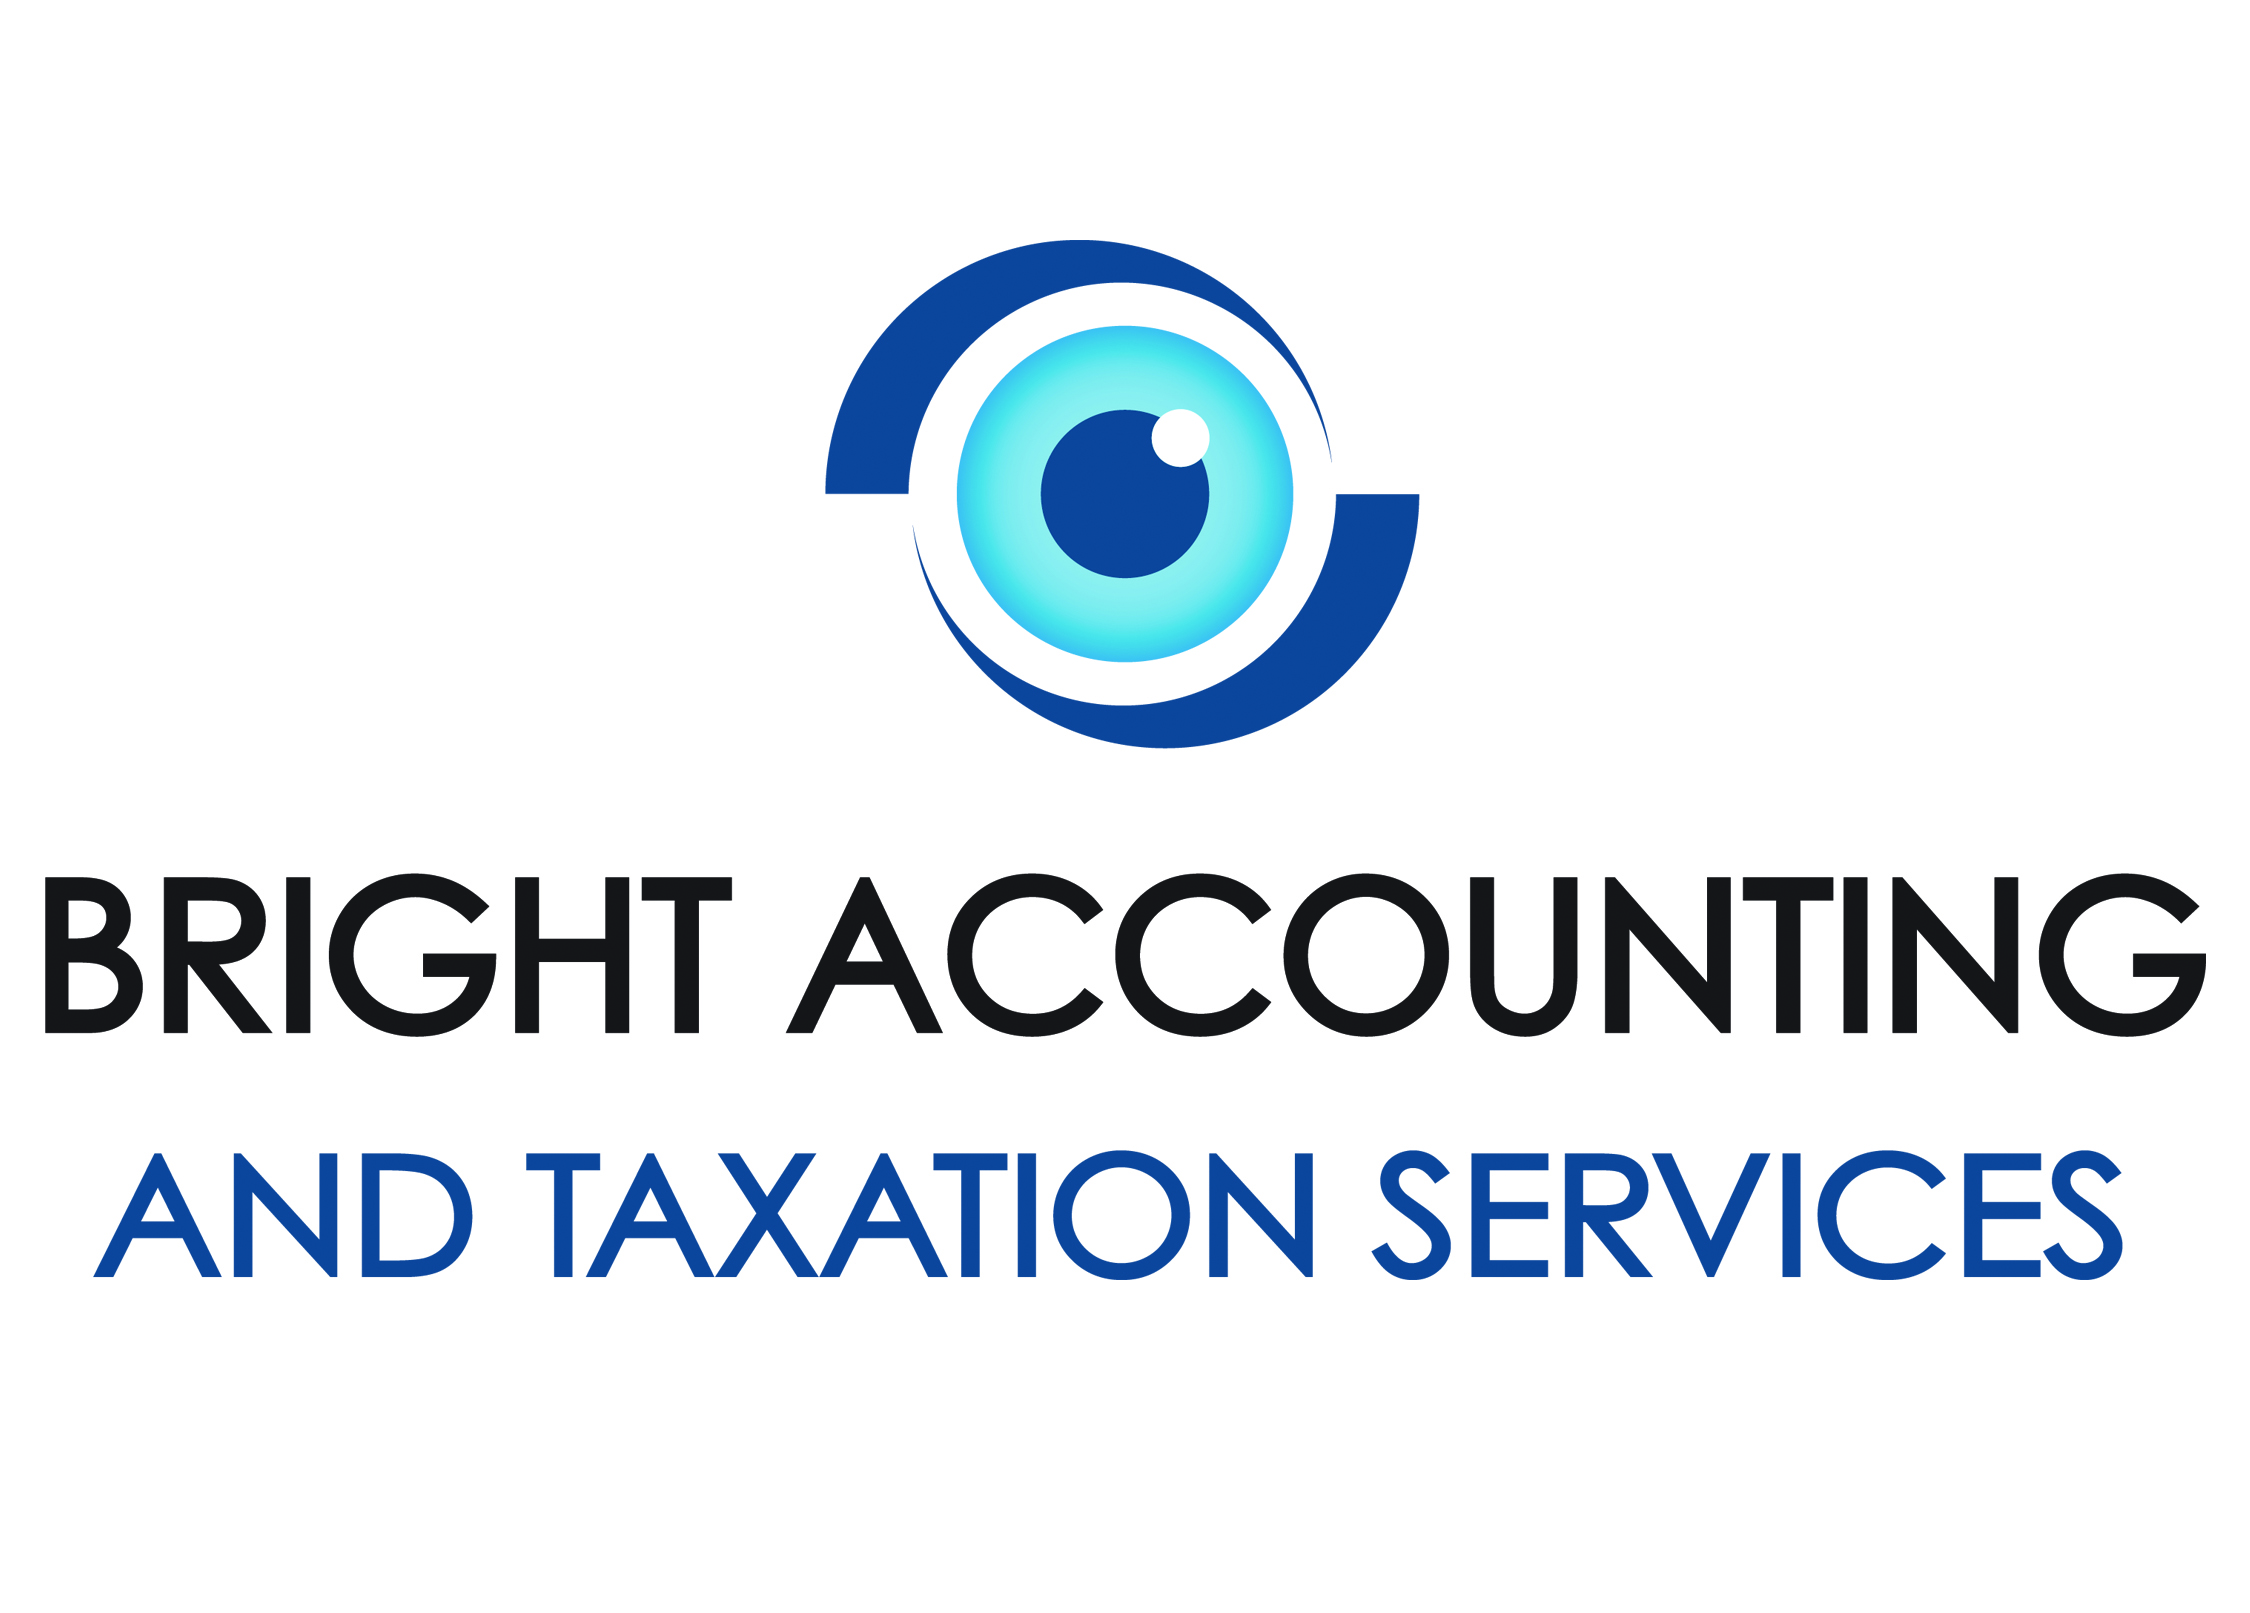 Bright Accounting